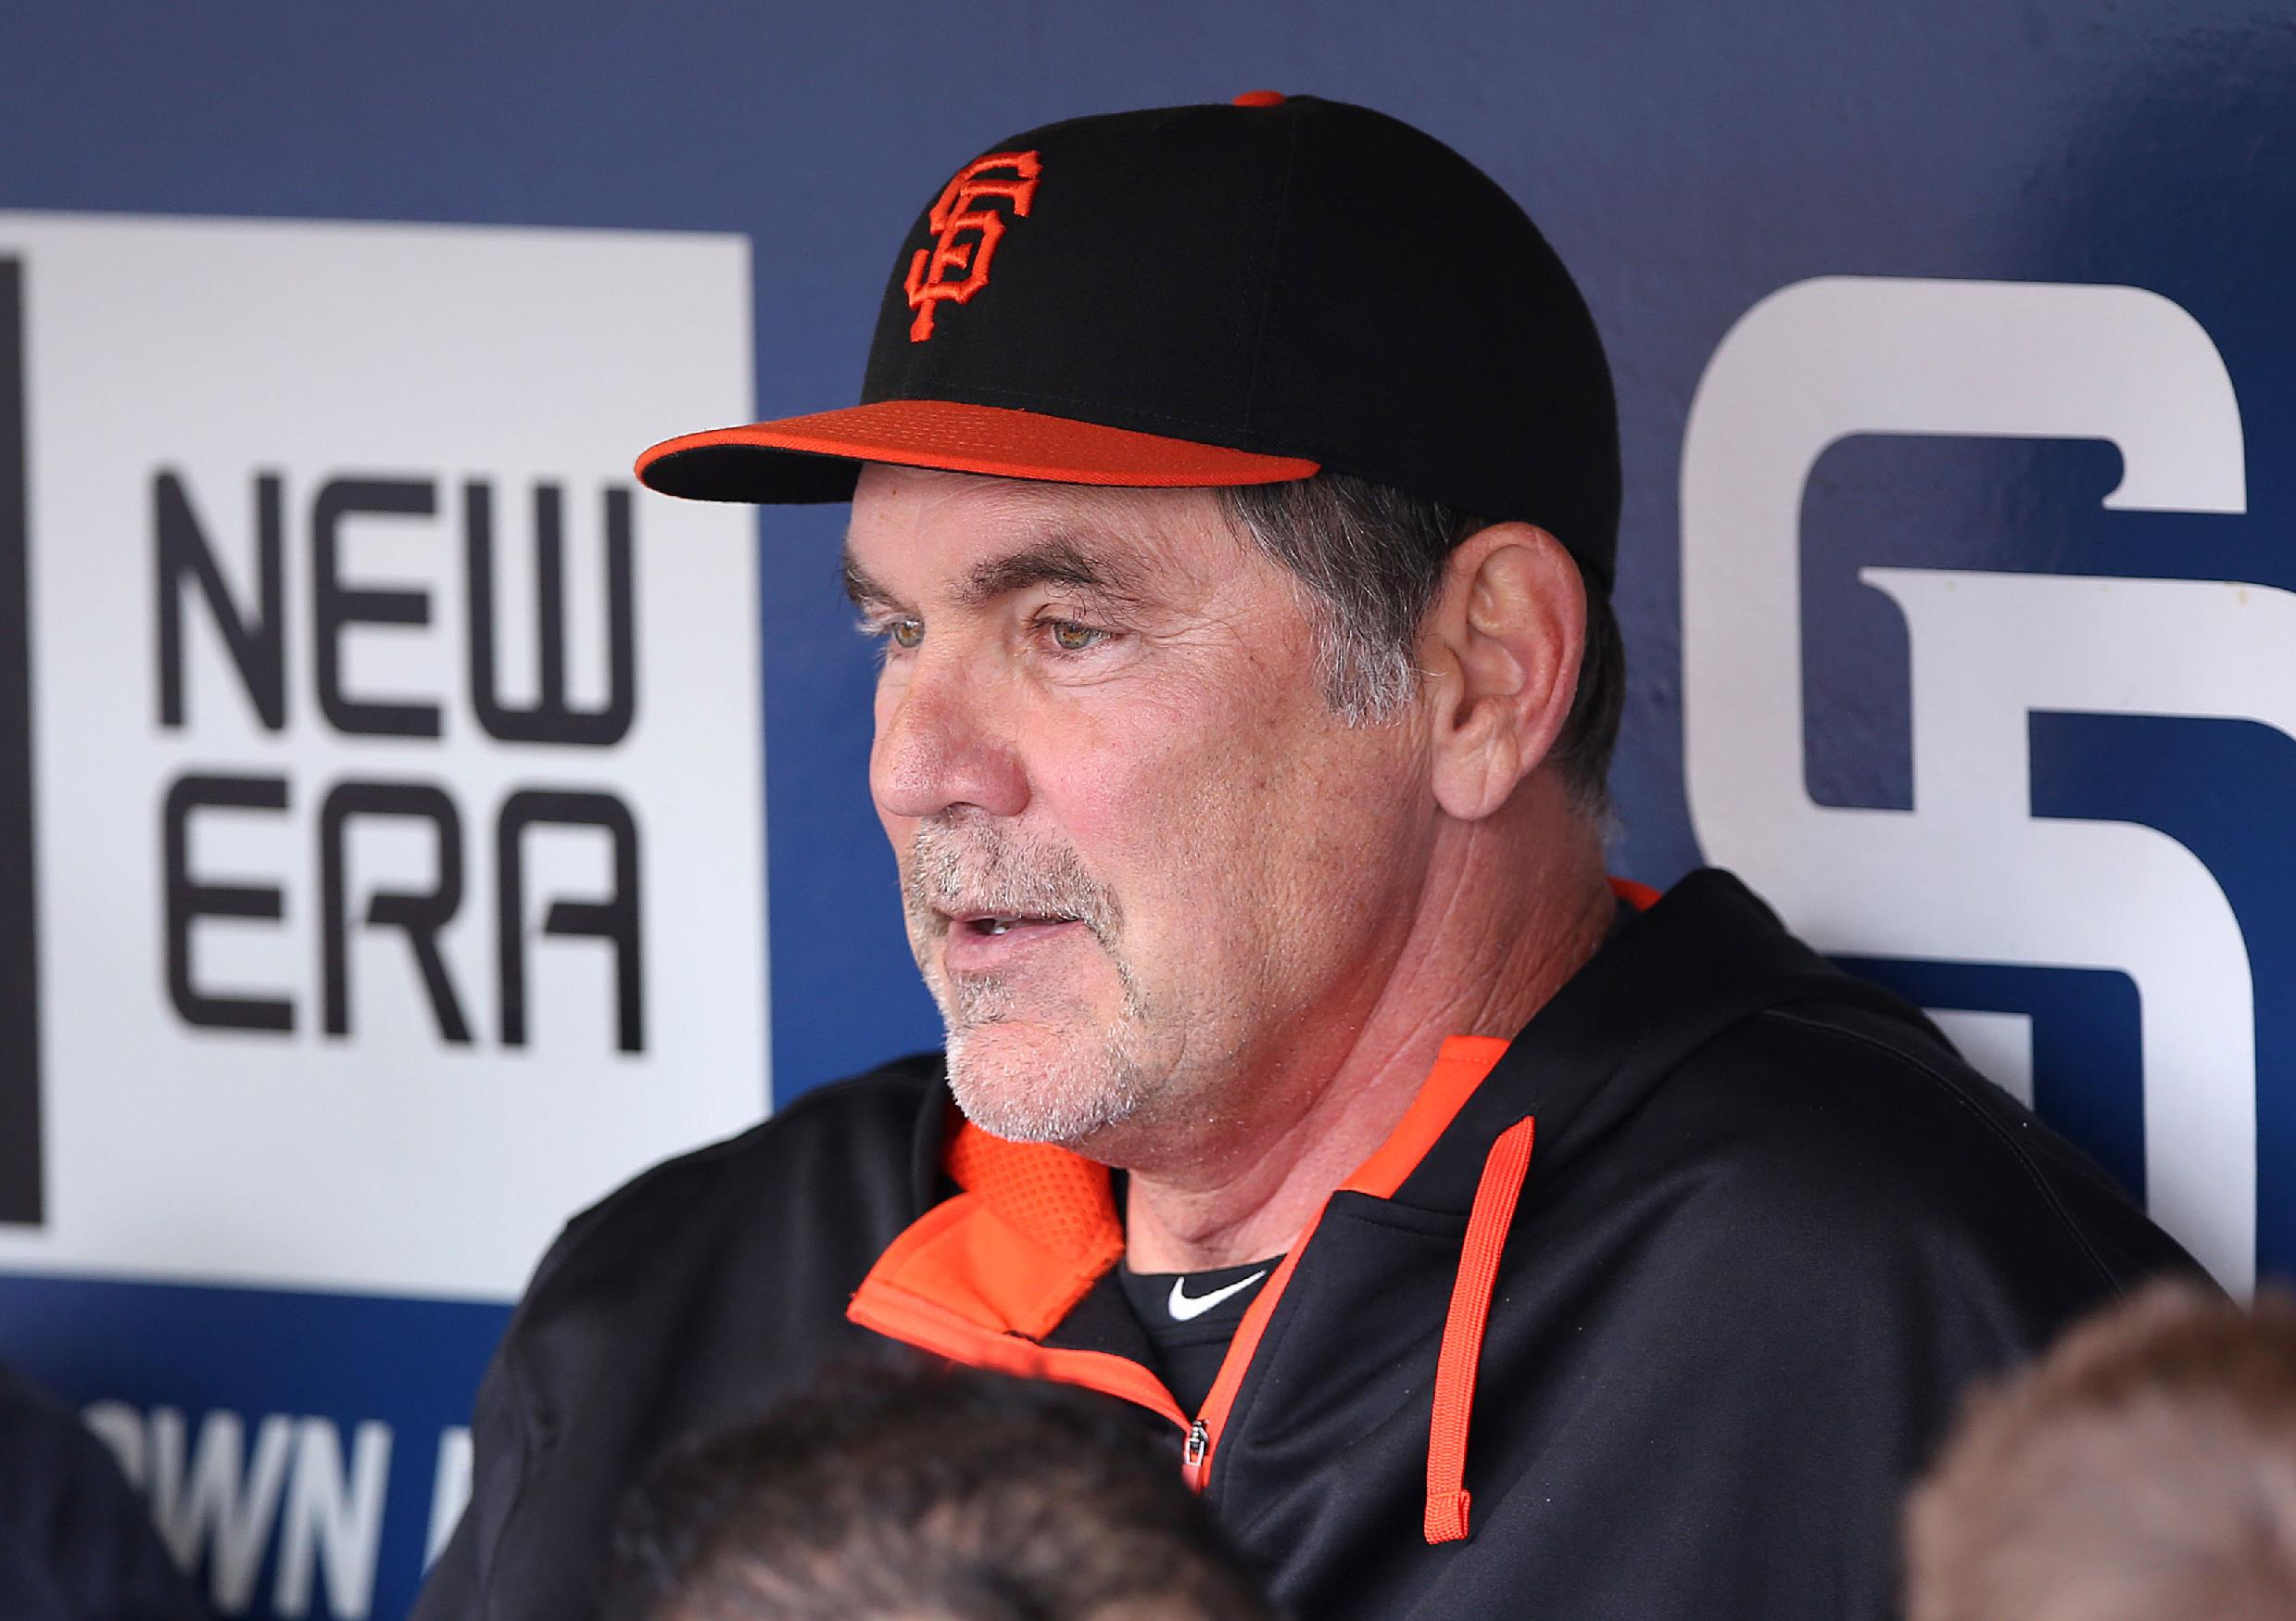 San Francisco Giants manager Bruce Bochy talks with members of the media before a baseball game against the San Diego Padres, Friday, April 18, 2014, in San Diego